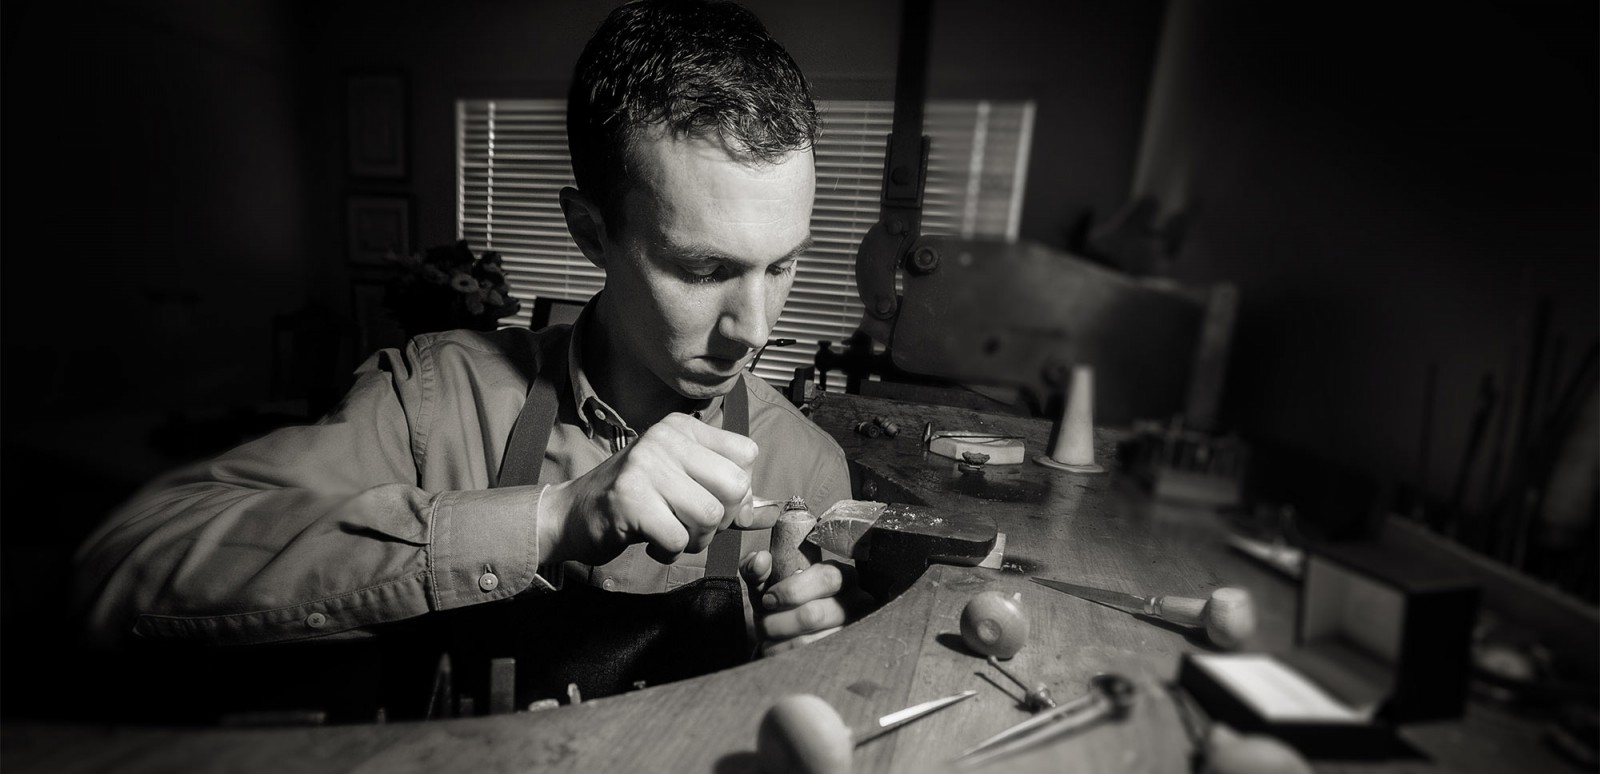 Auckand jewellery designer Julian Bartrom, working on custom made jewellery and custom engagement ring design